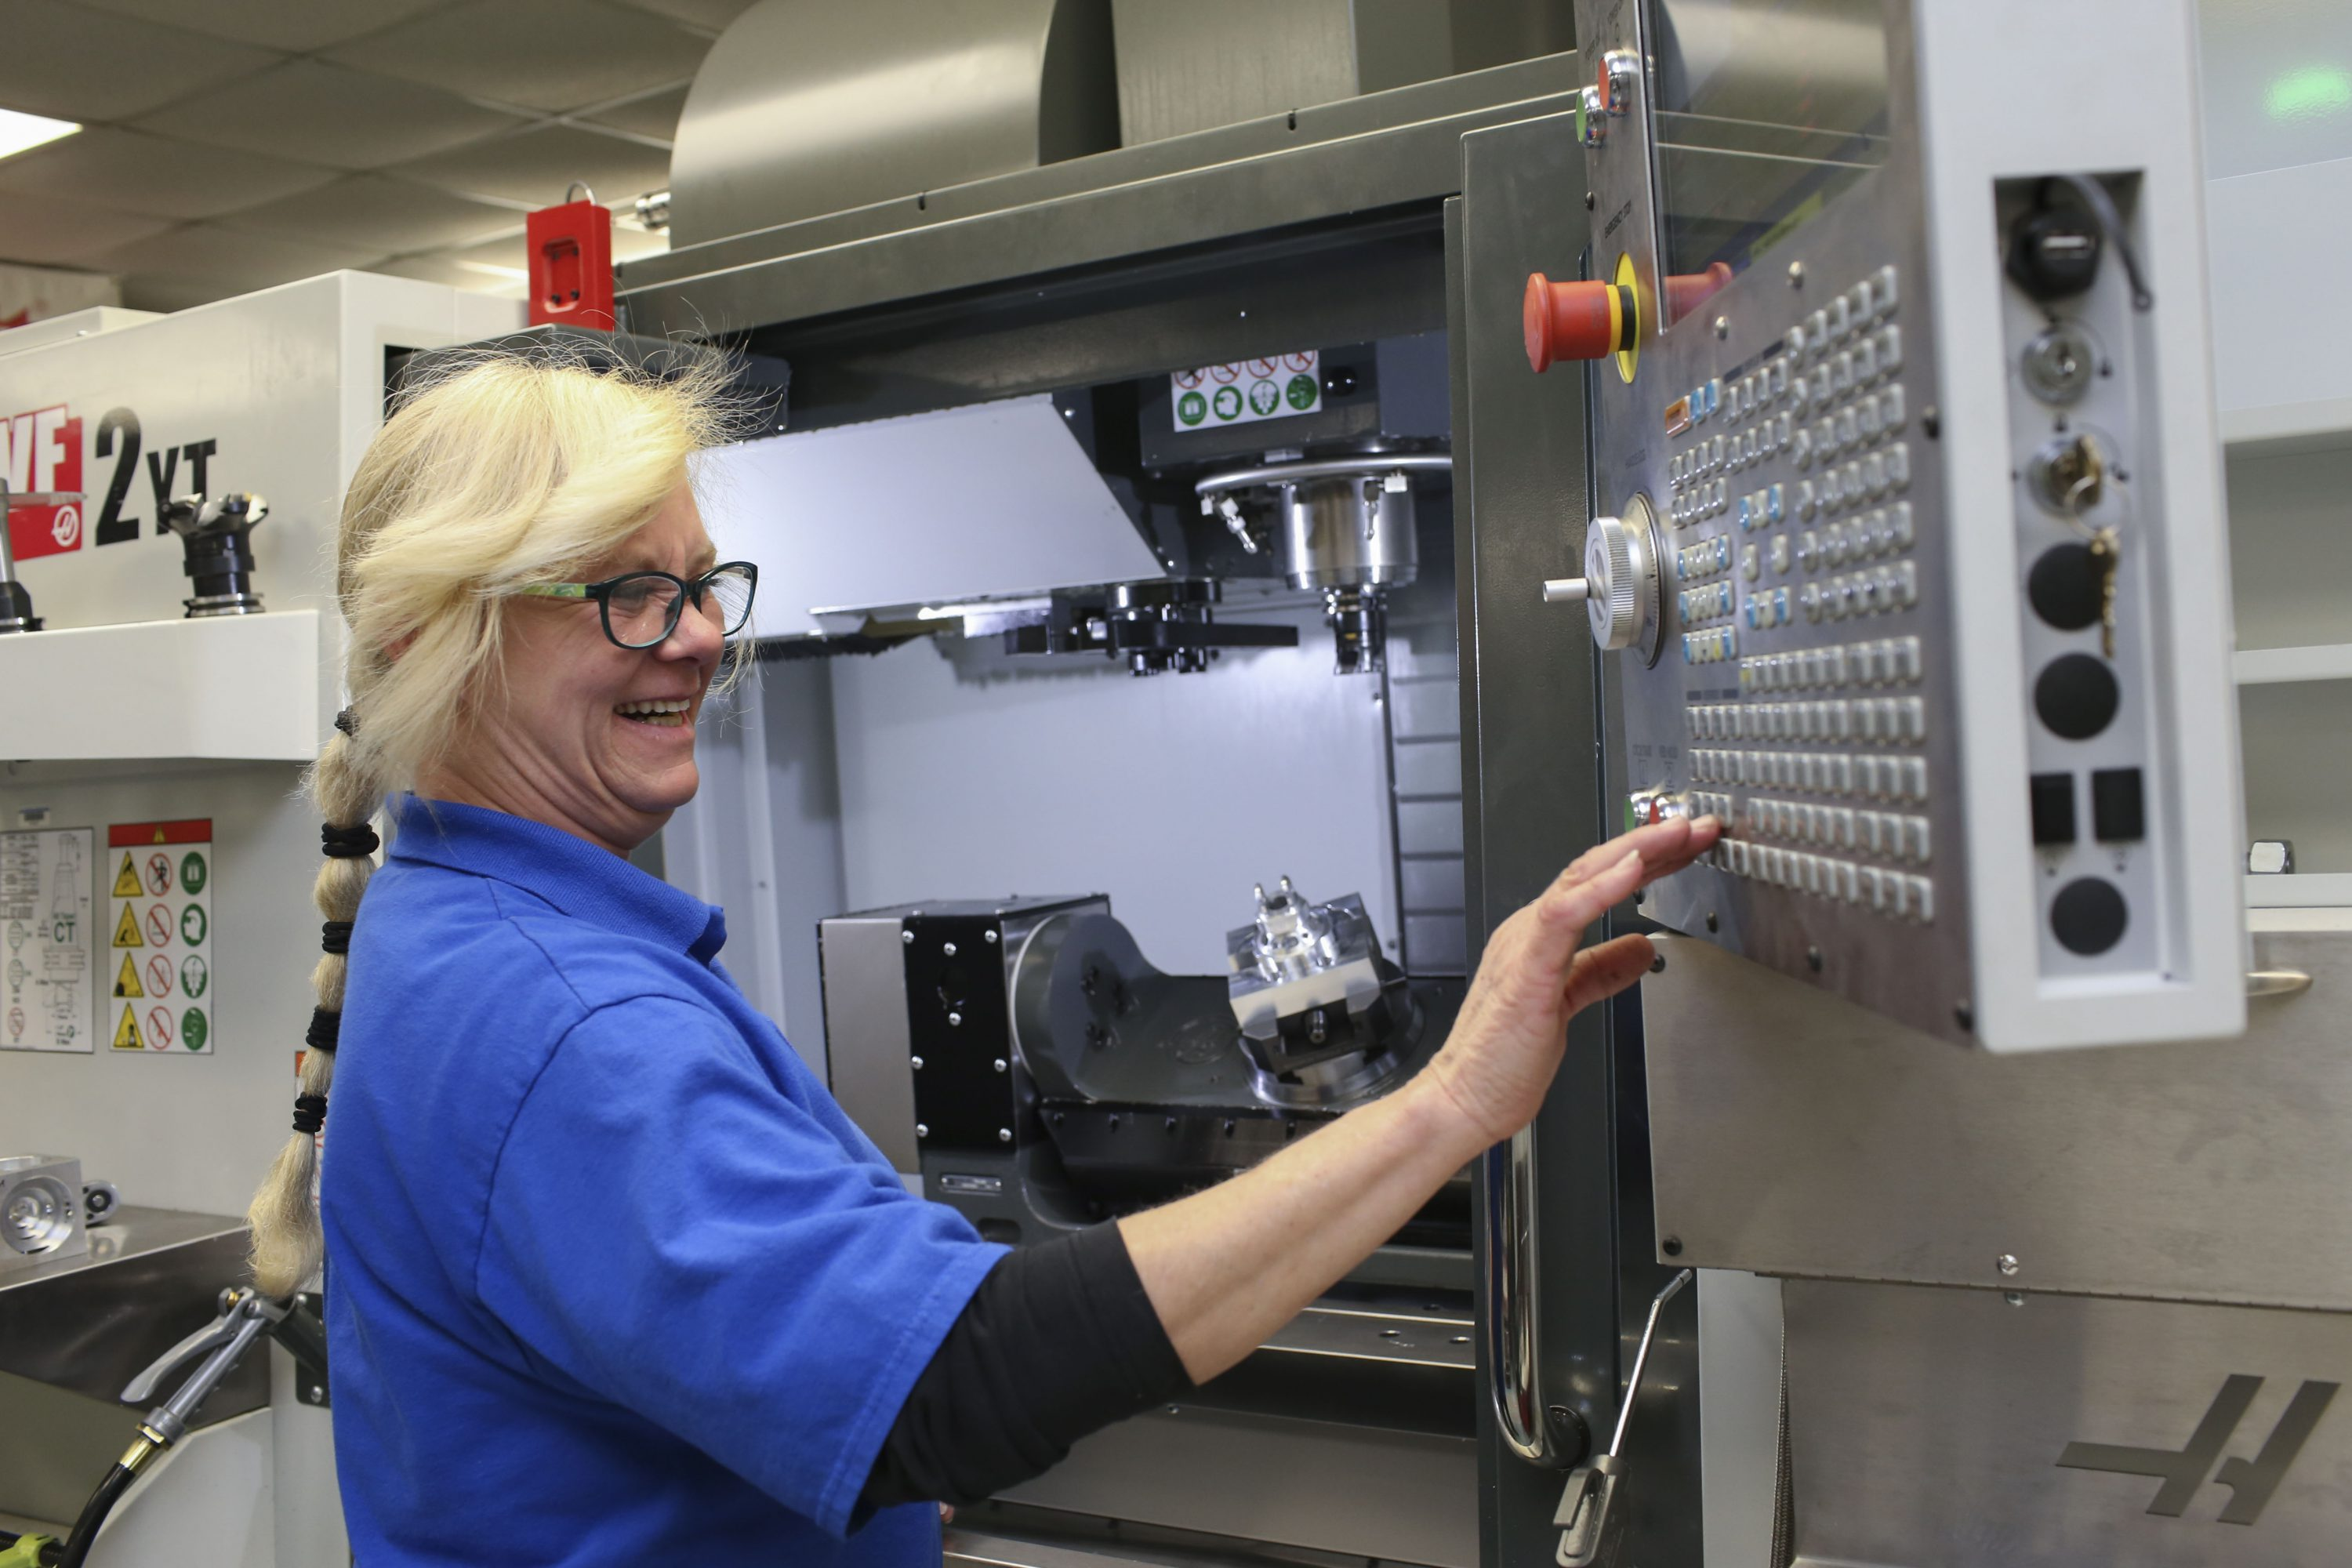 Southwestern Illinois College's precision machining program ranked No. 8 on stateuniversity.com's list of Most Popular Schools for Machine Tool Technology/Machinist Major & Degree Programs in the nation.